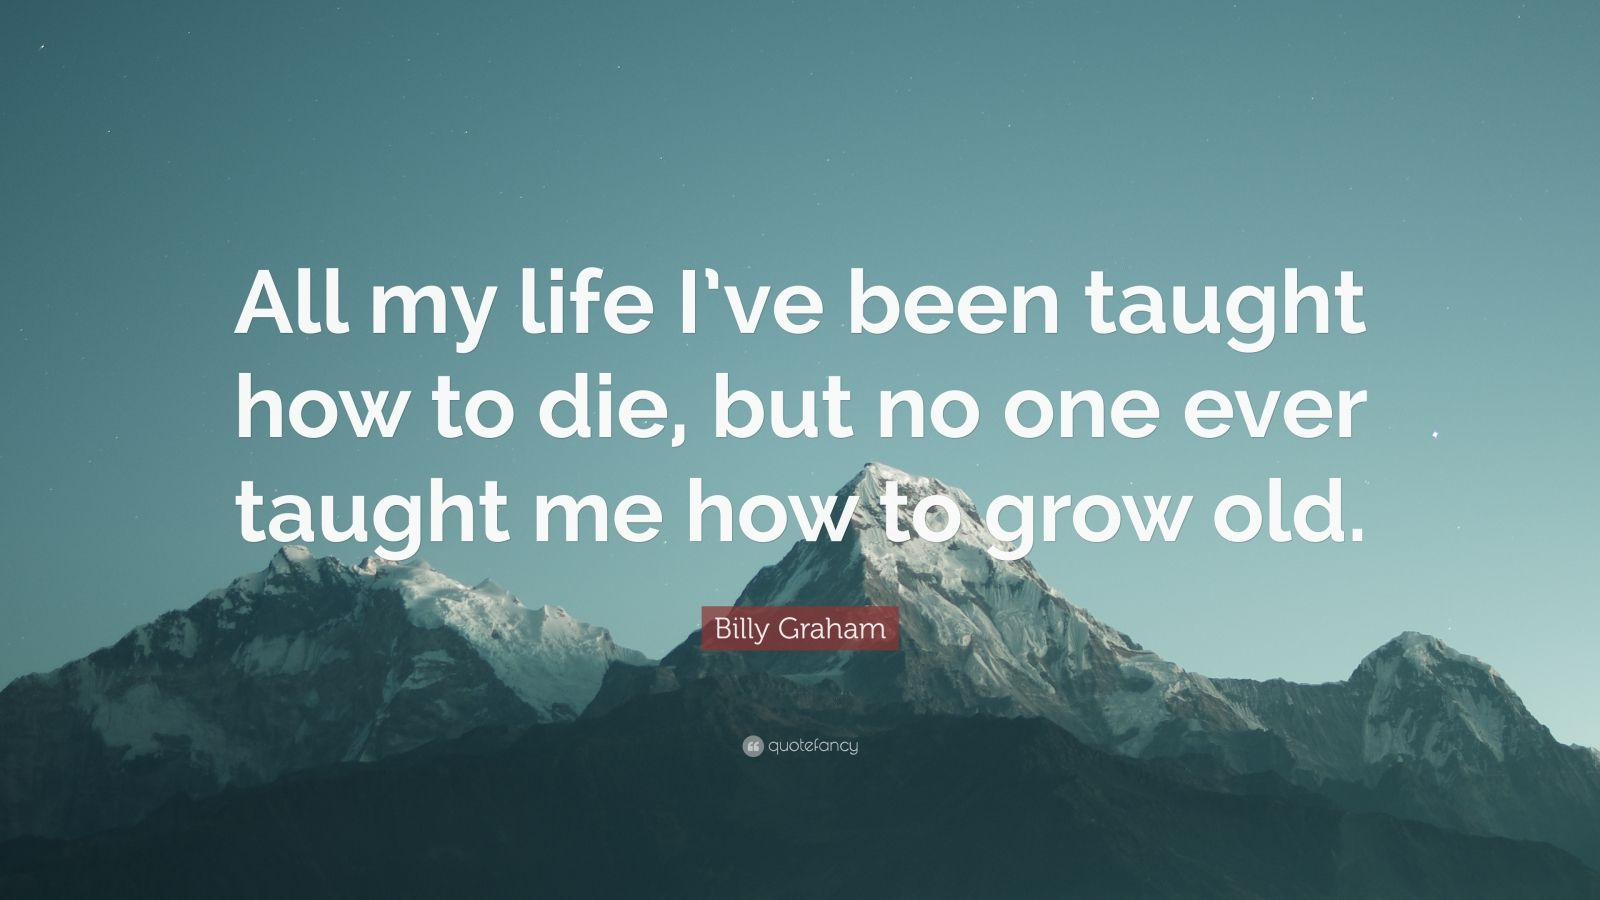 """Billy Graham Quote: """"All my life I've been taught how to die, but no one ever taught me how to grow old."""""""